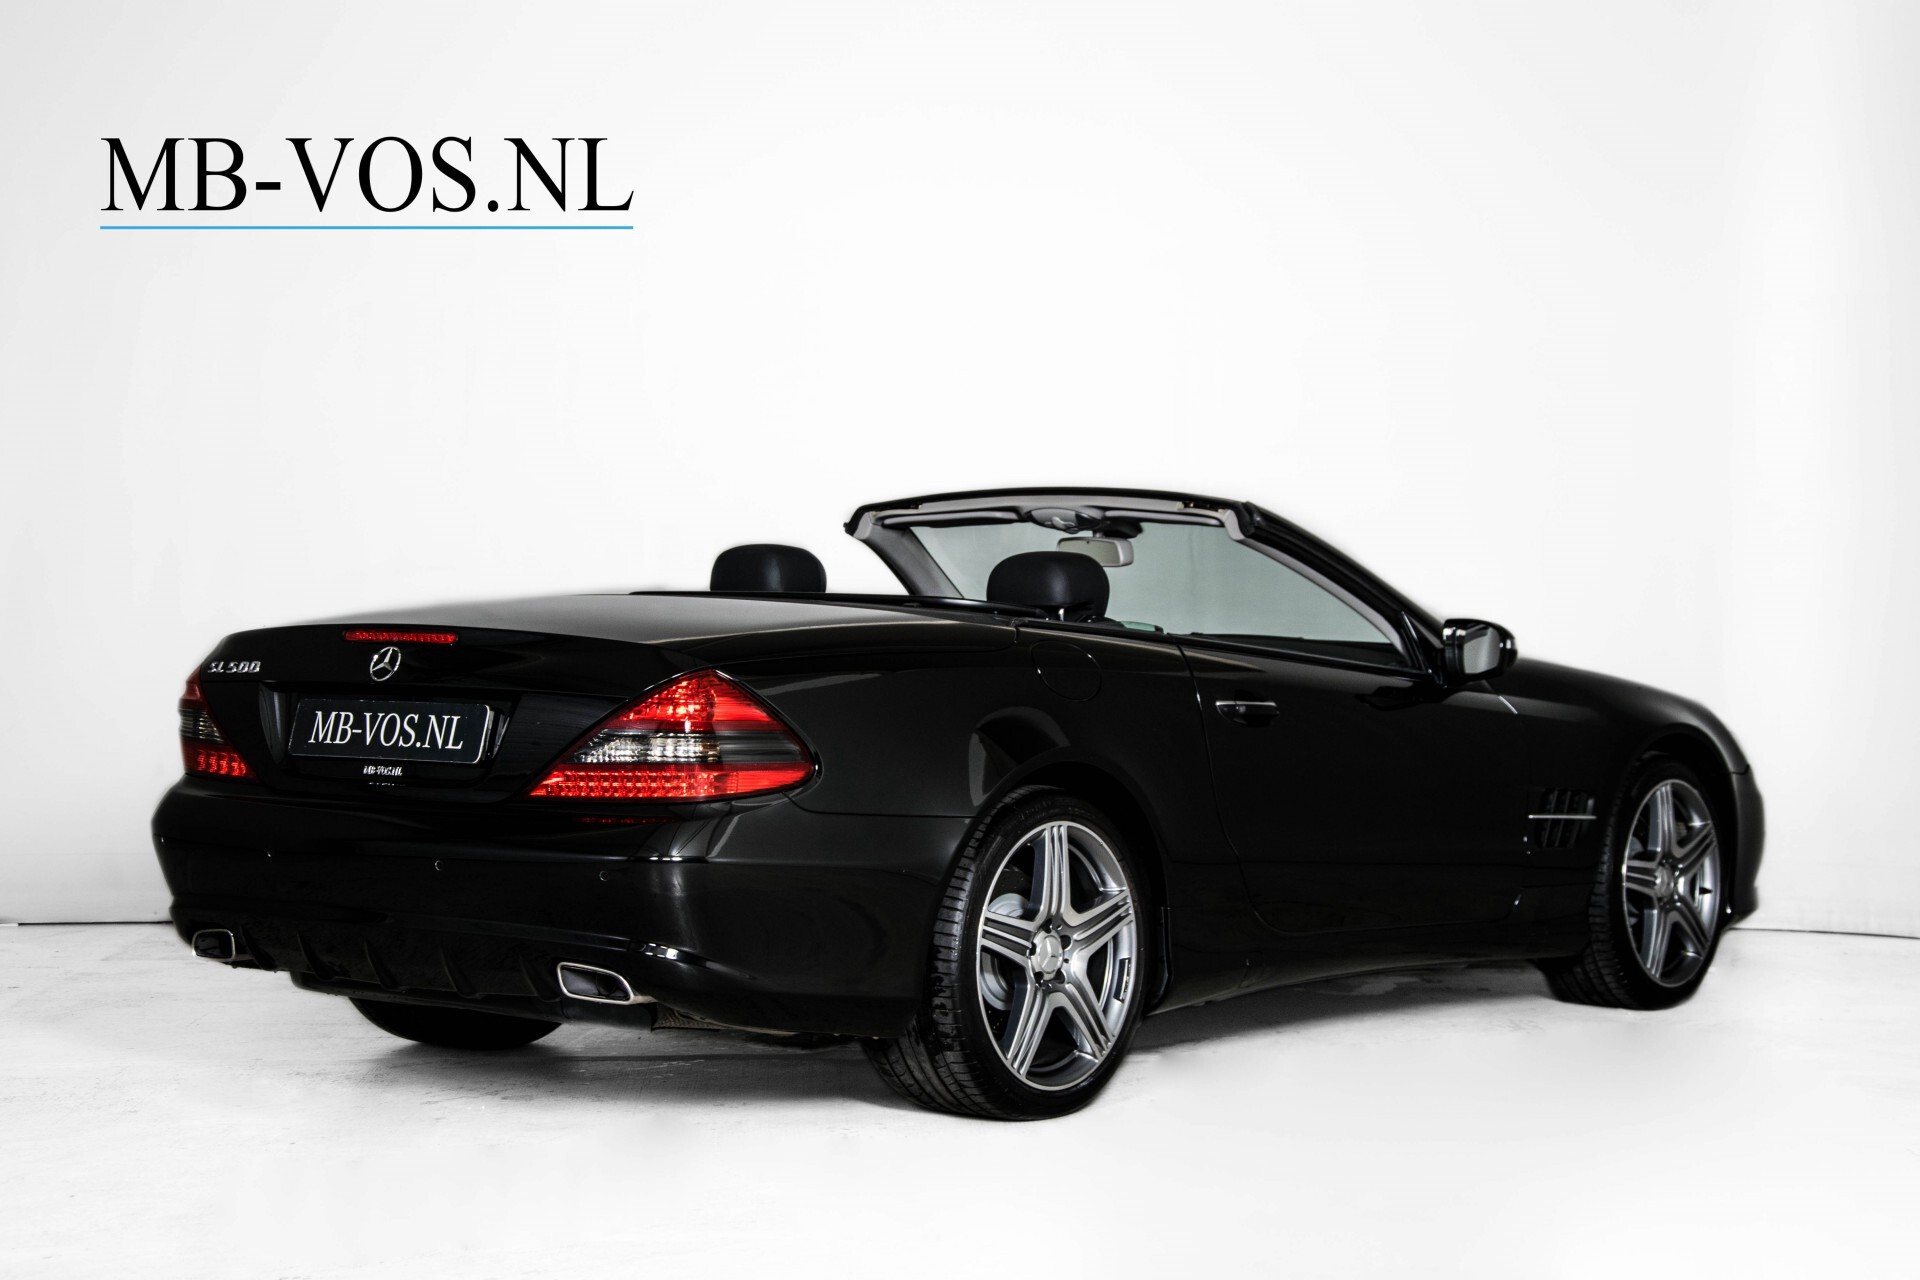 Mercedes-Benz SL-Klasse 500 Sport ABC/Harman-Kardon/Comand/Distronic Aut7 NP €175292 Foto 3